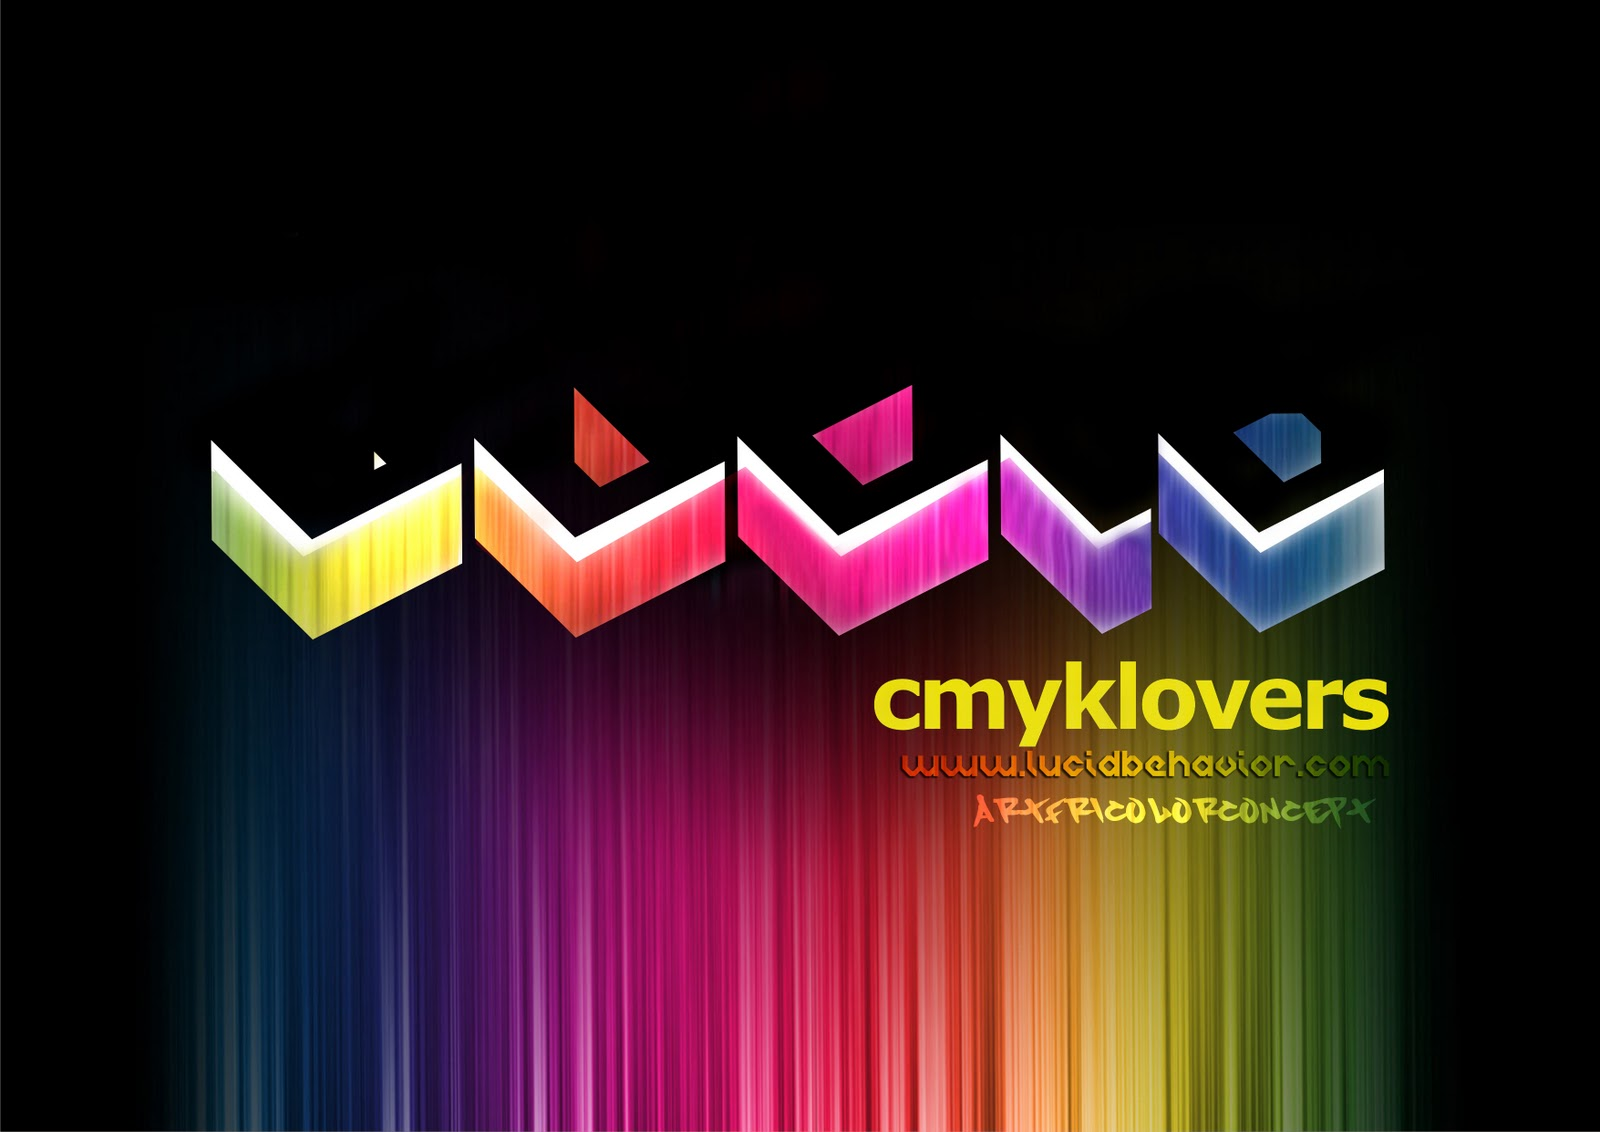 LUCID CMYK LOVERS concept 2010, Lucid Cloth.